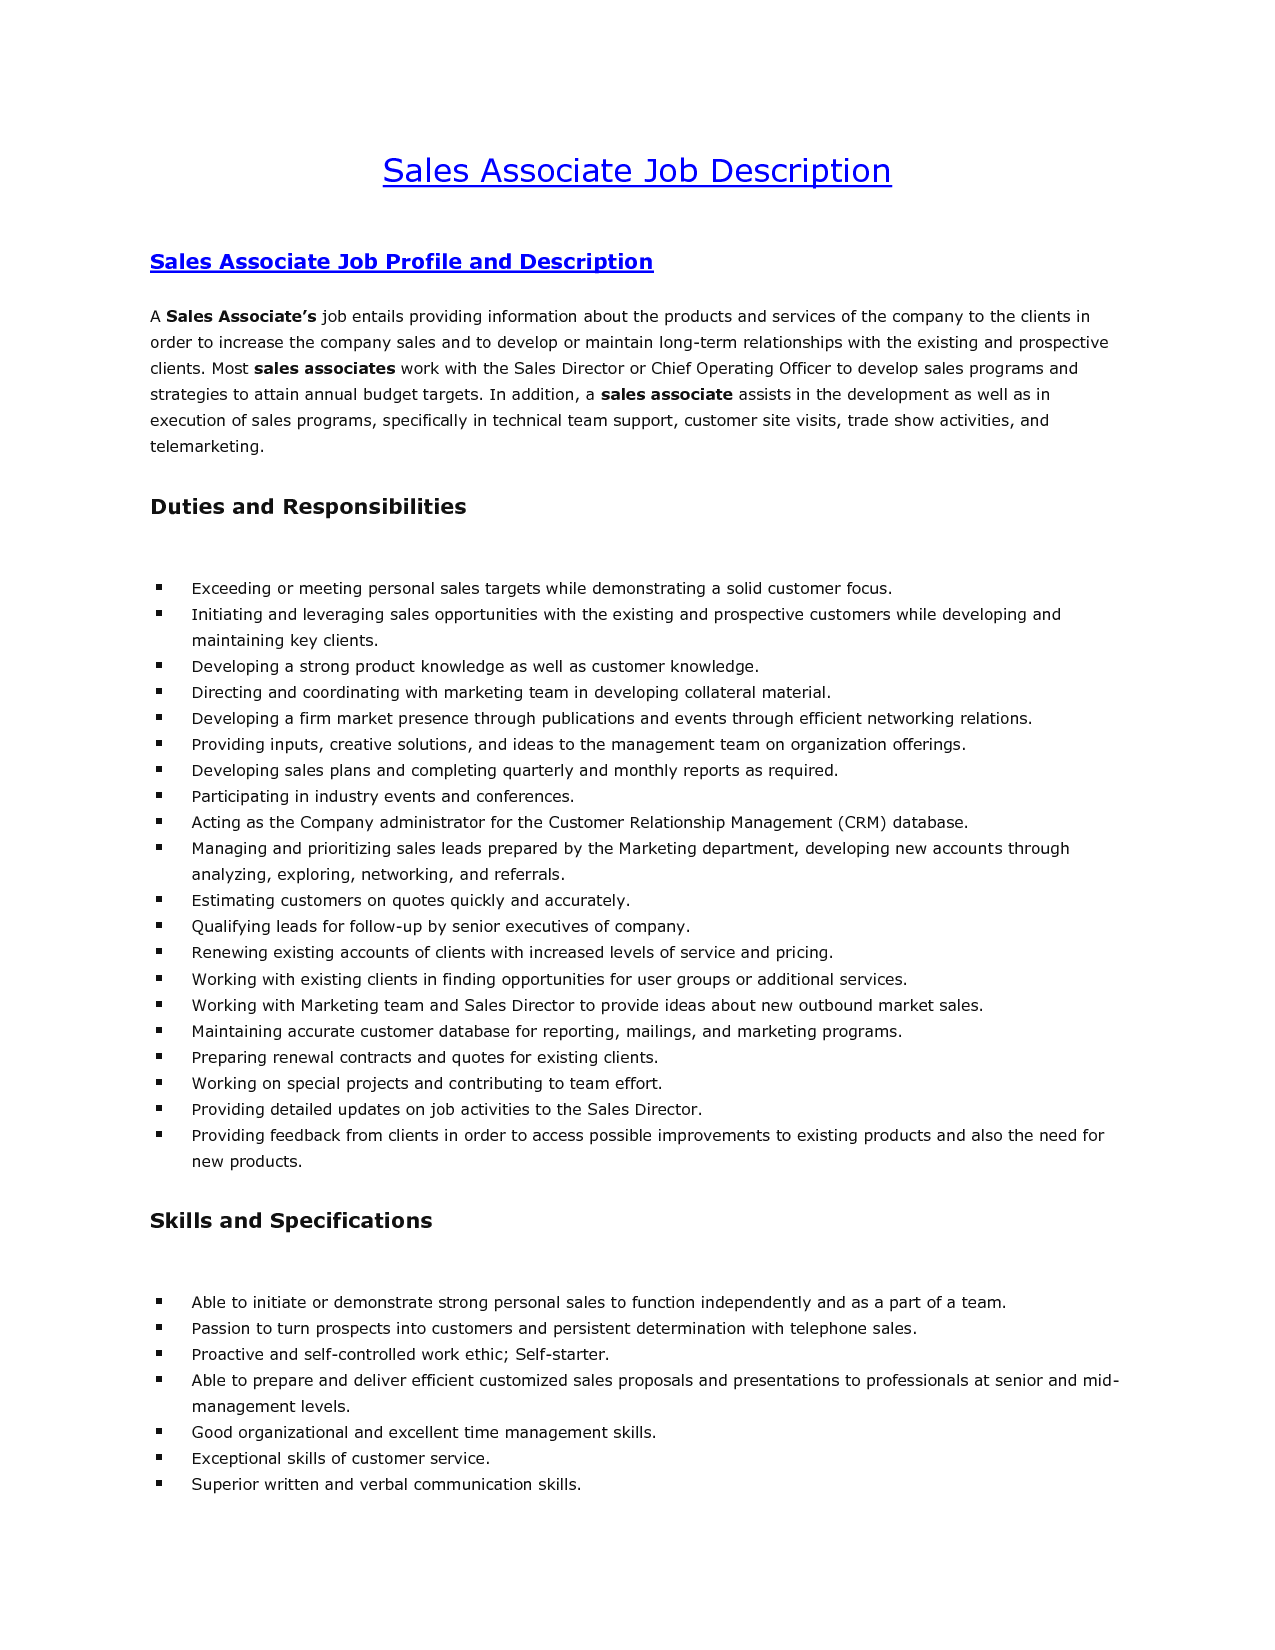 sales associate duties sales associate job description sales associate job description for resume